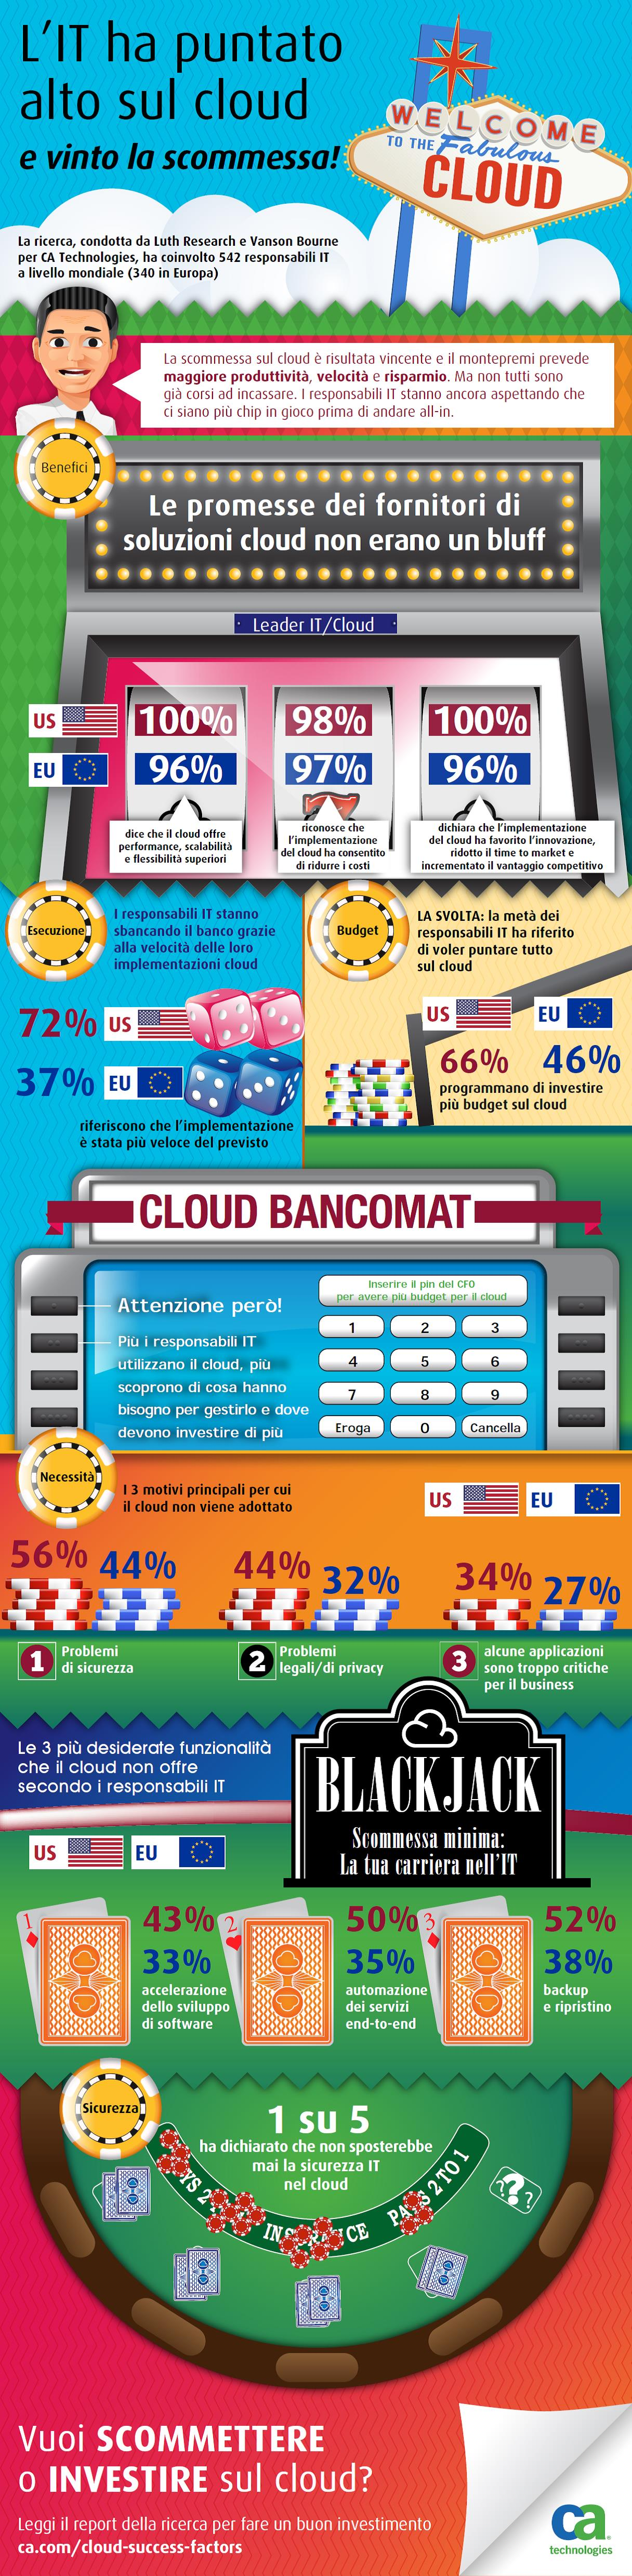 Infografica Cloud-CA-LuthResearch